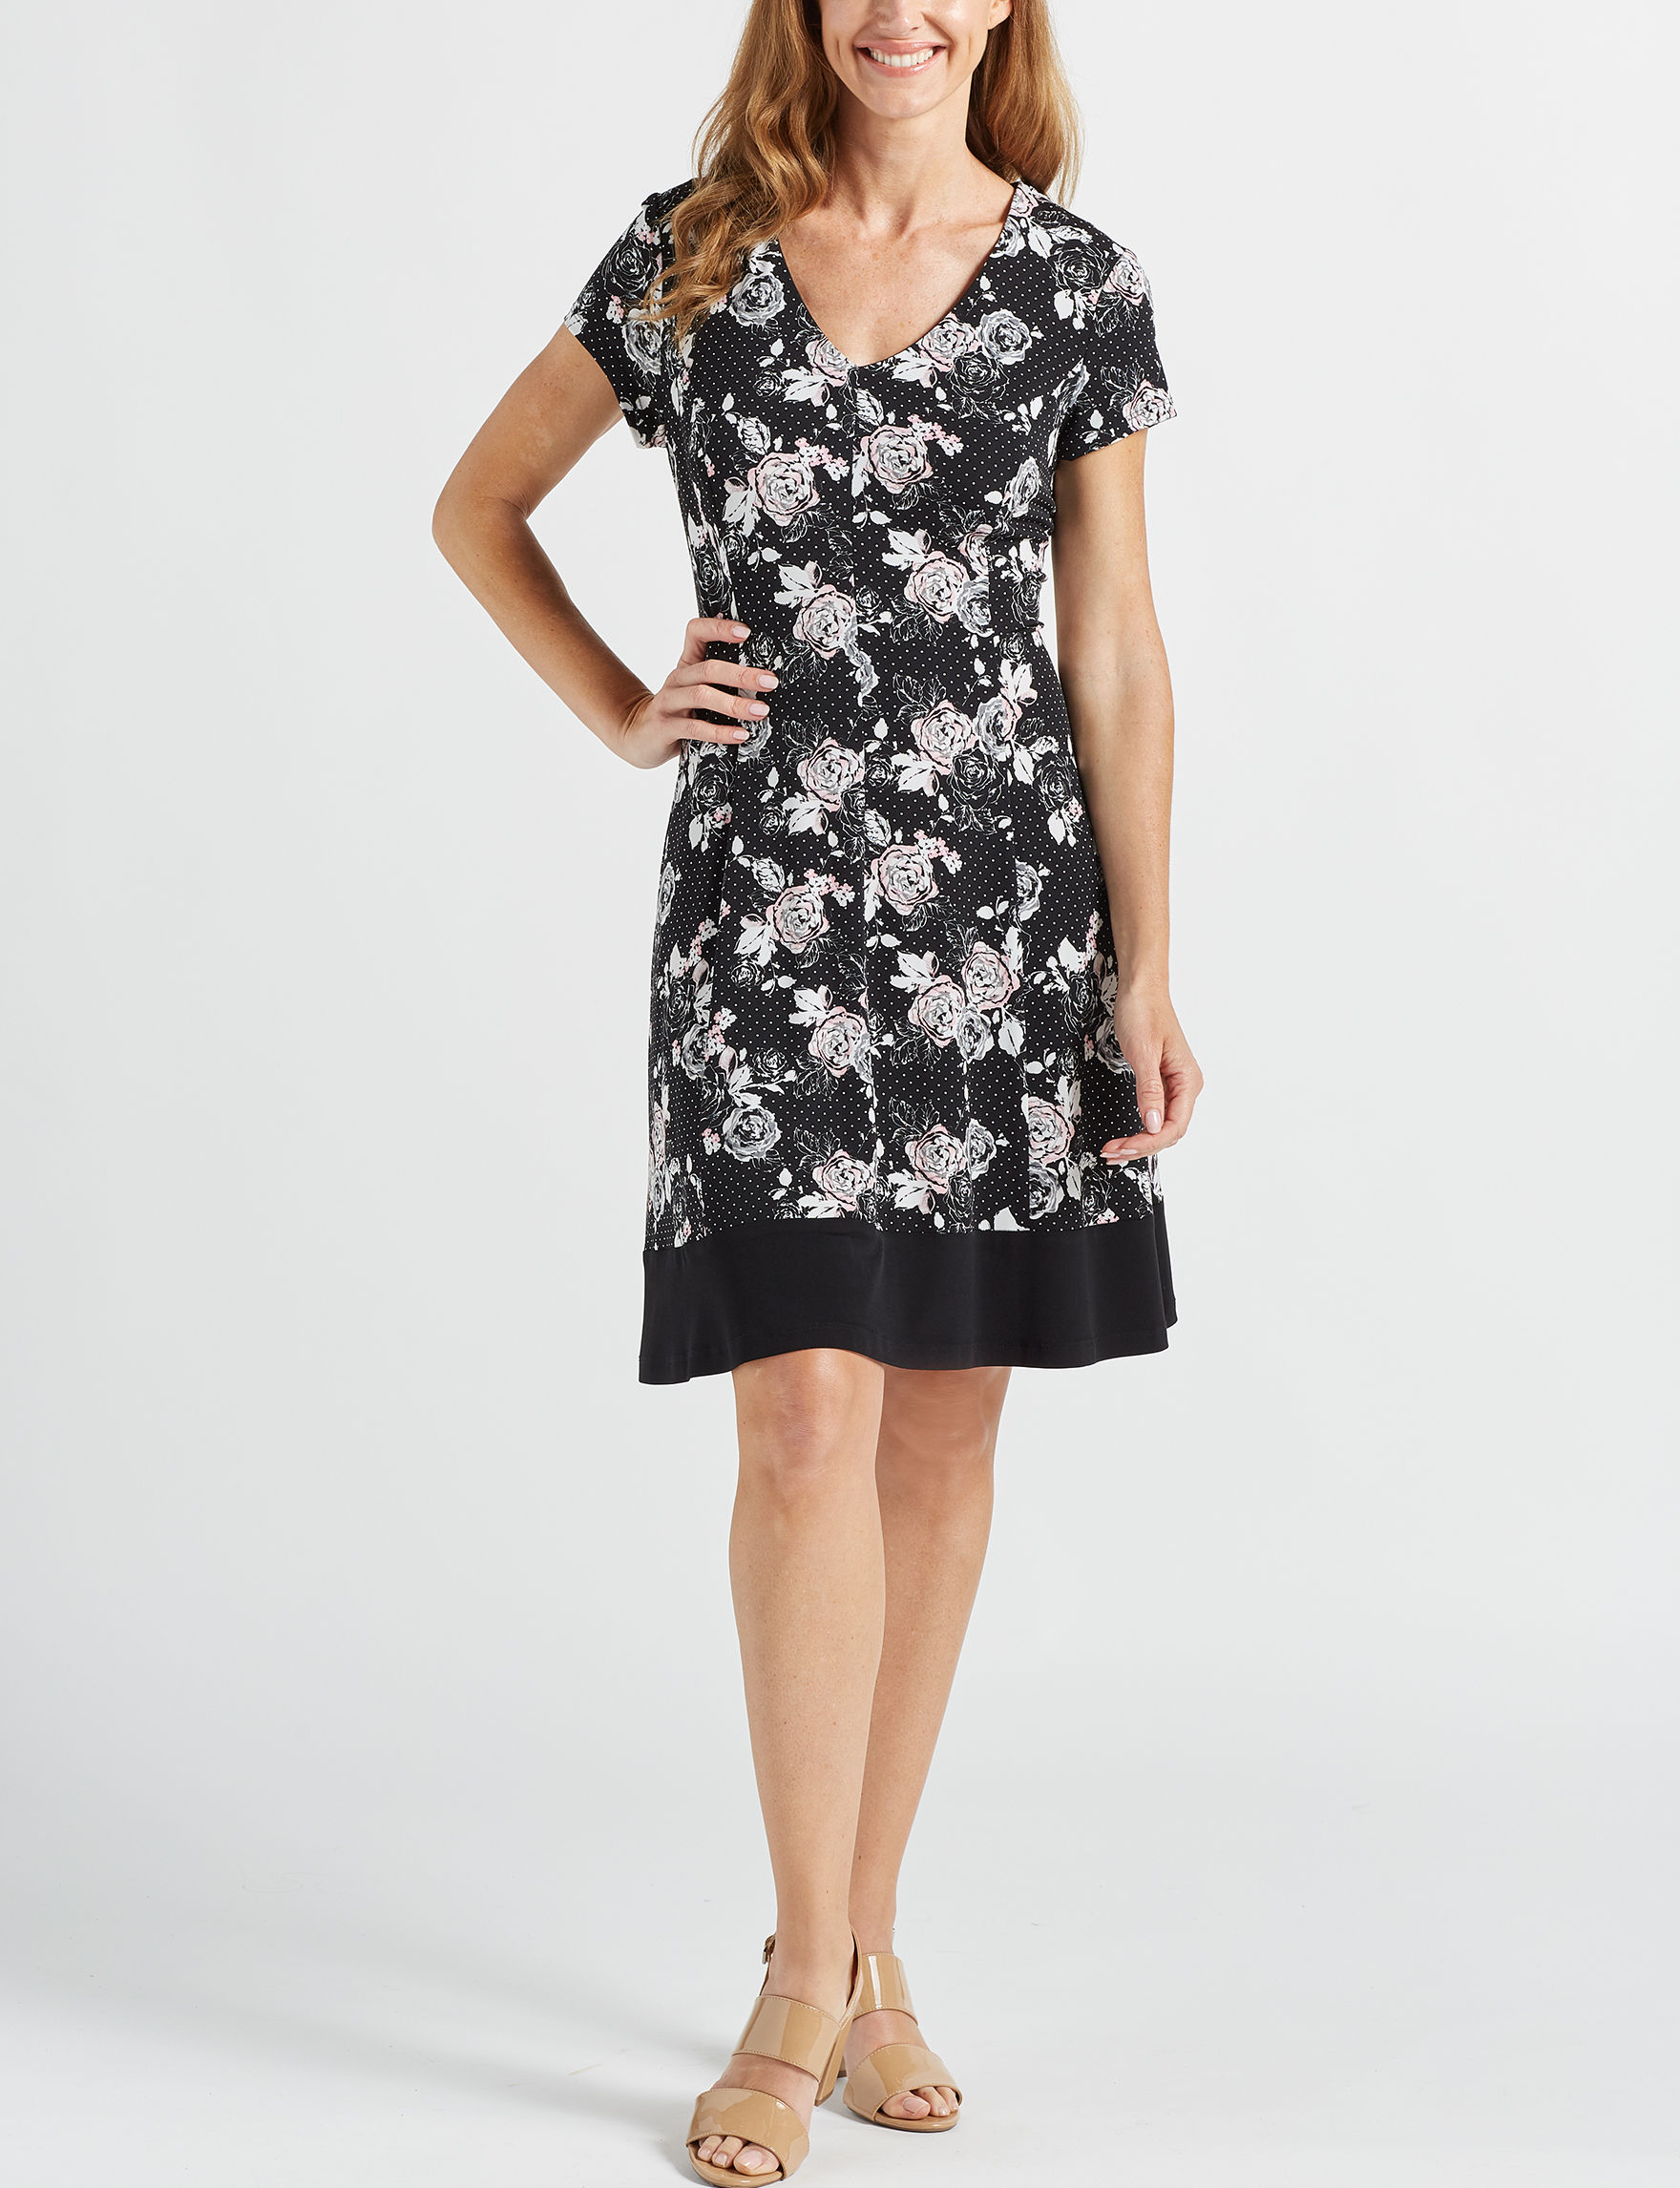 Connected Black Everyday & Casual Shift Dresses